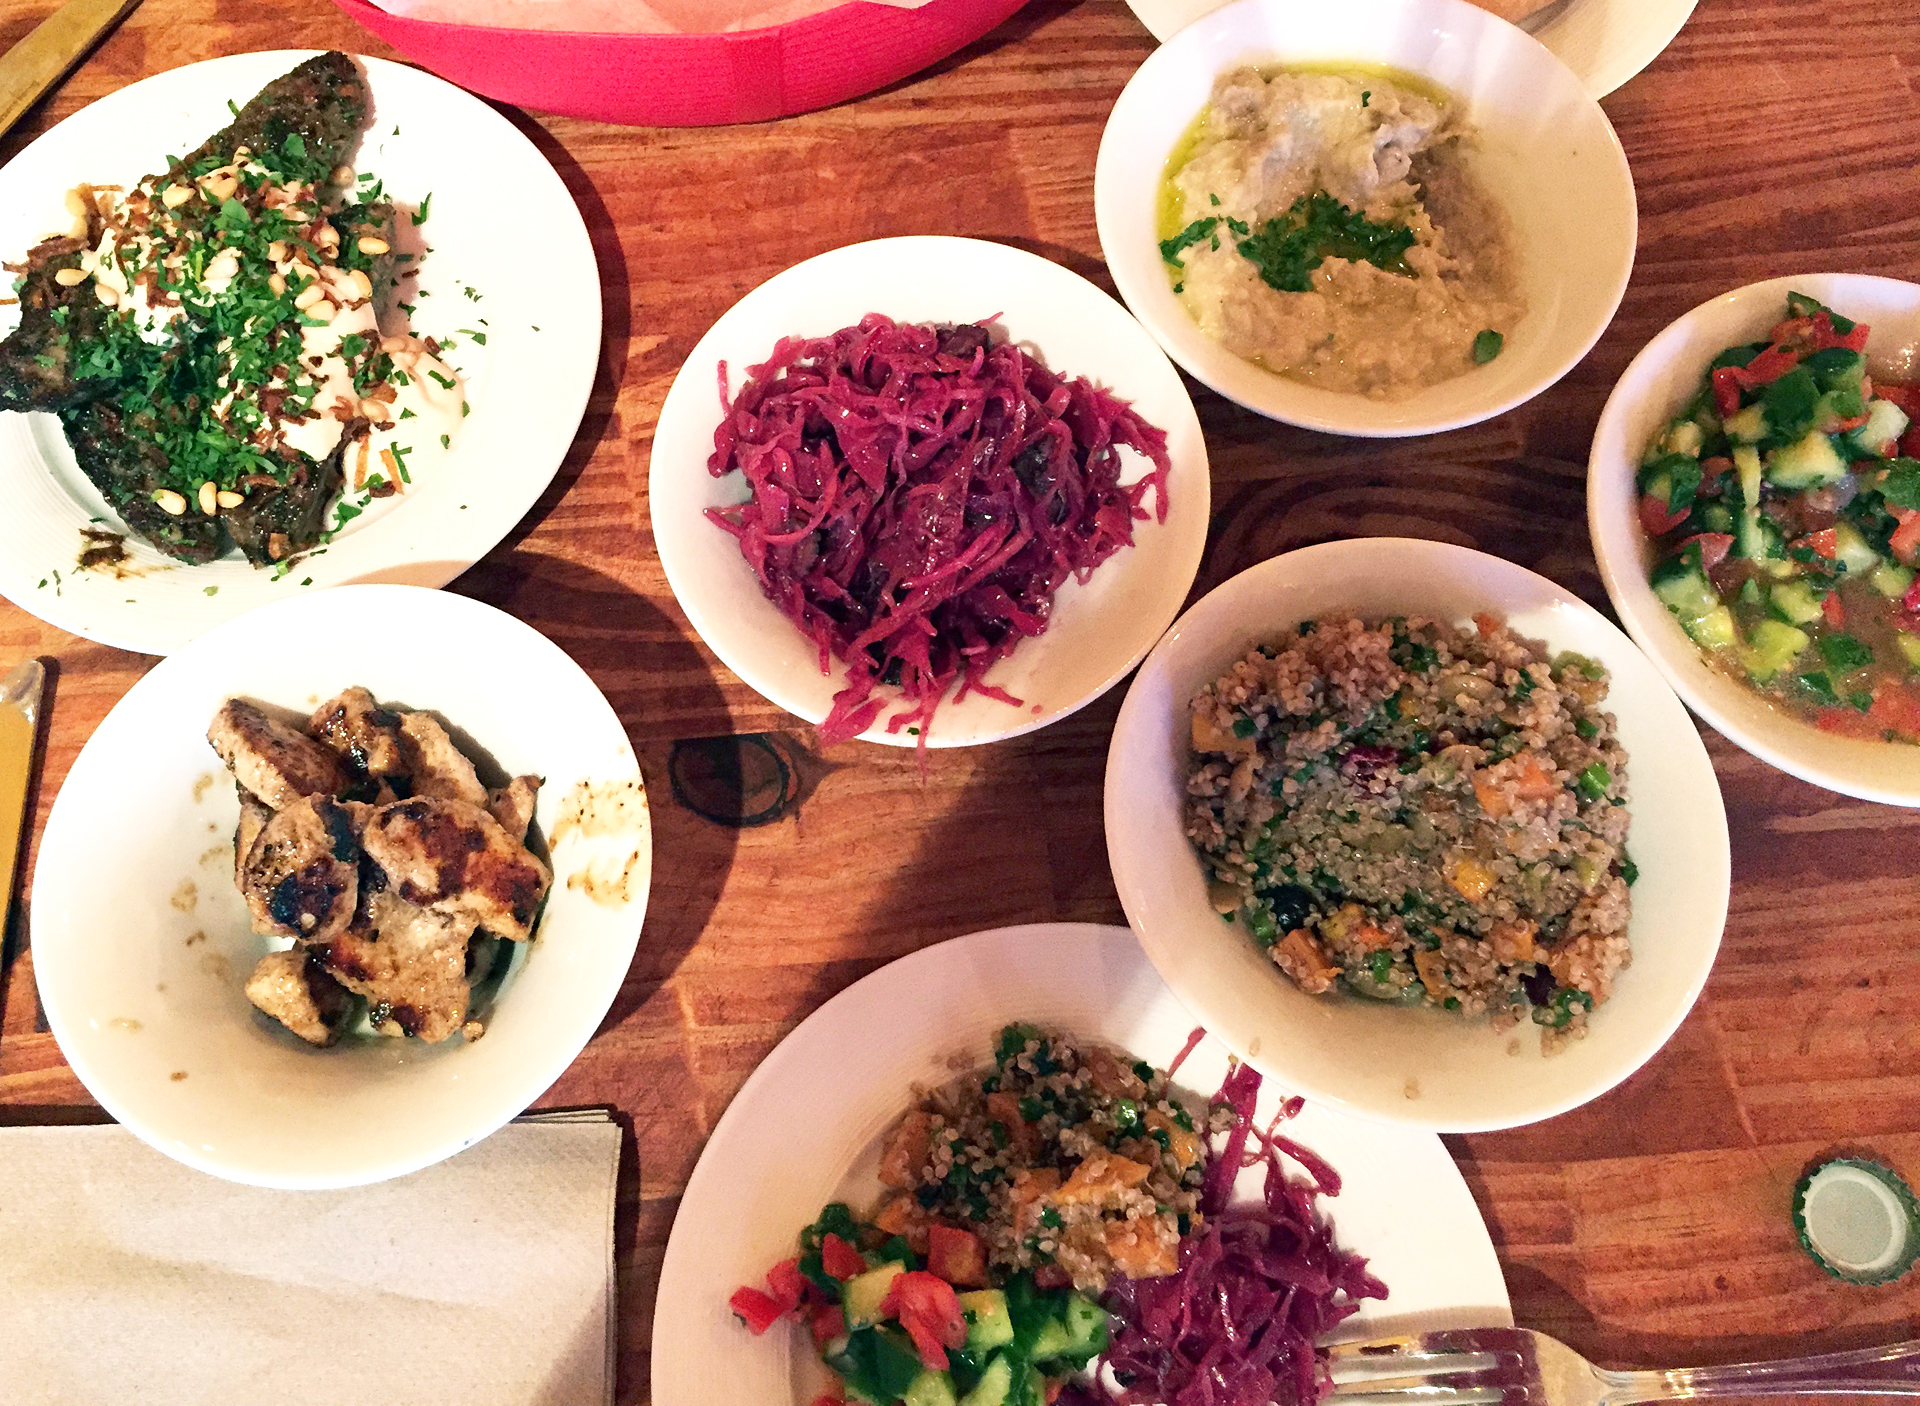 A generous spread at Ba-Bite, including butternut squash and quinoa salad with cranberries and pumpkin seeds; Salad Shirazi (cucumbers, tomatoes, parsley and mint), Red Cabbage salad, Baba Ganoush, Lamb Kefta and  Chicken Shishlik.